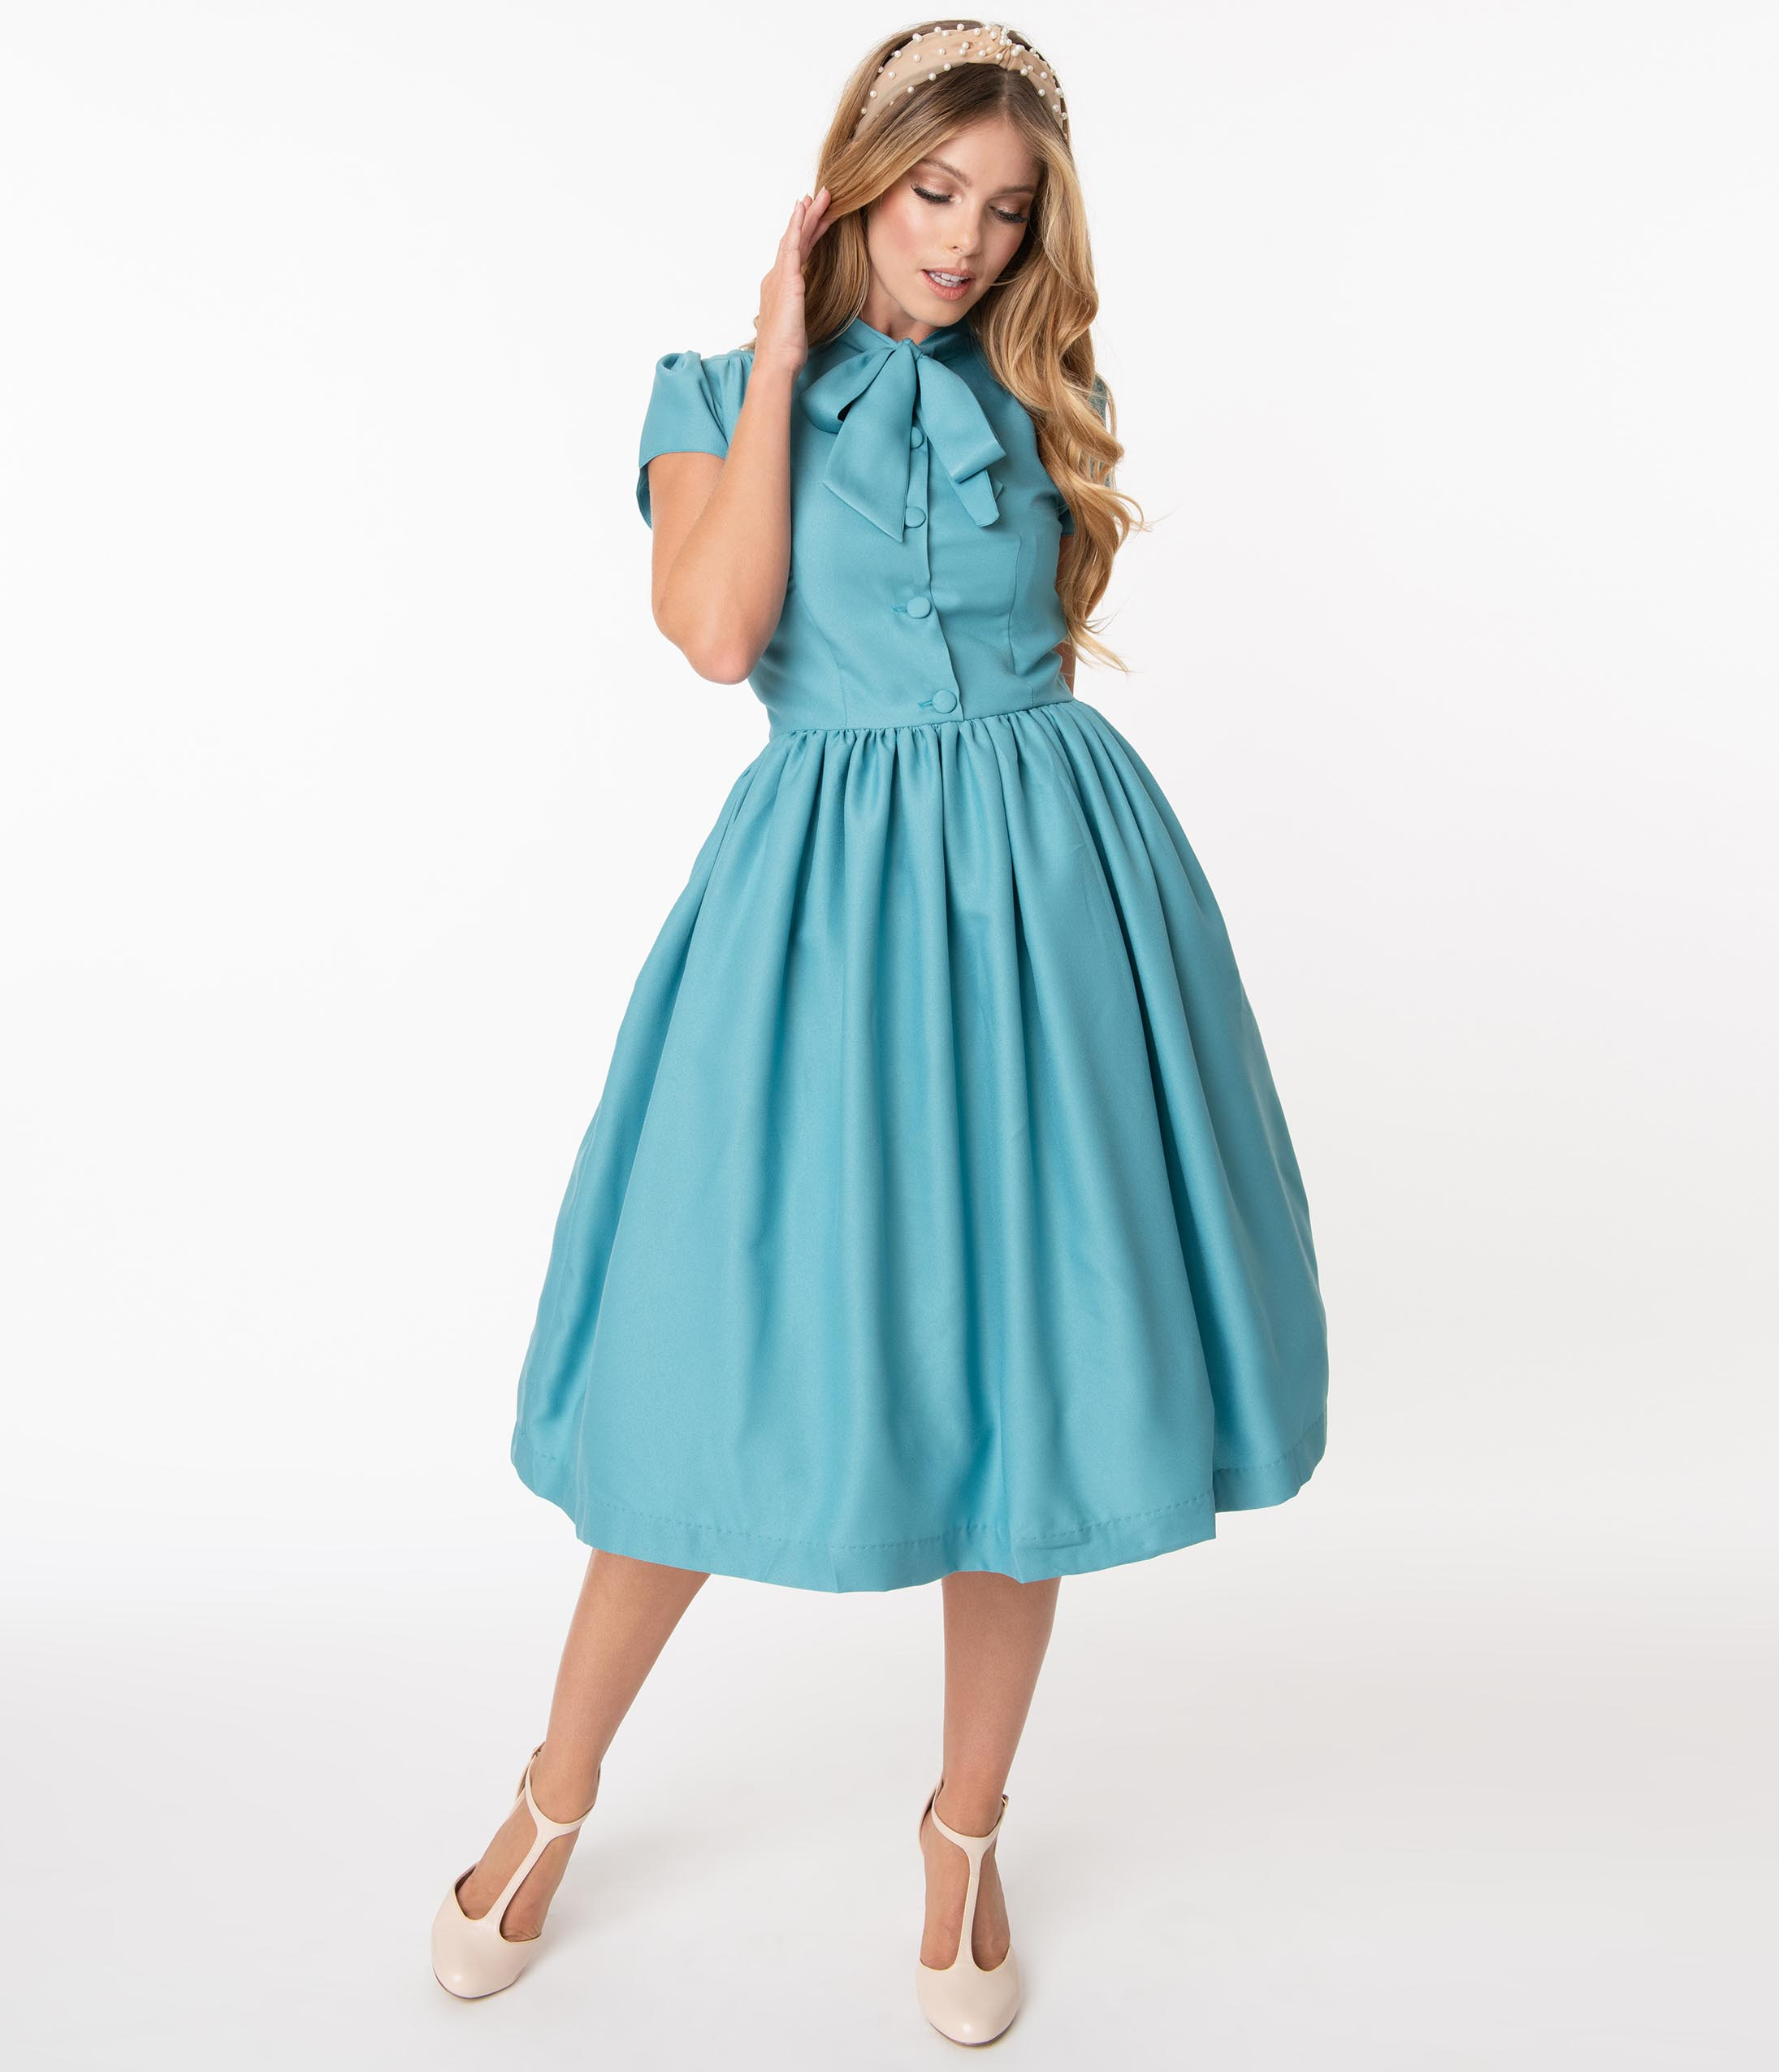 Vintage 50s Dresses: Best 1950s Dress Styles 1950S Style Sky Blue Estelle Swing Dress $88.00 AT vintagedancer.com